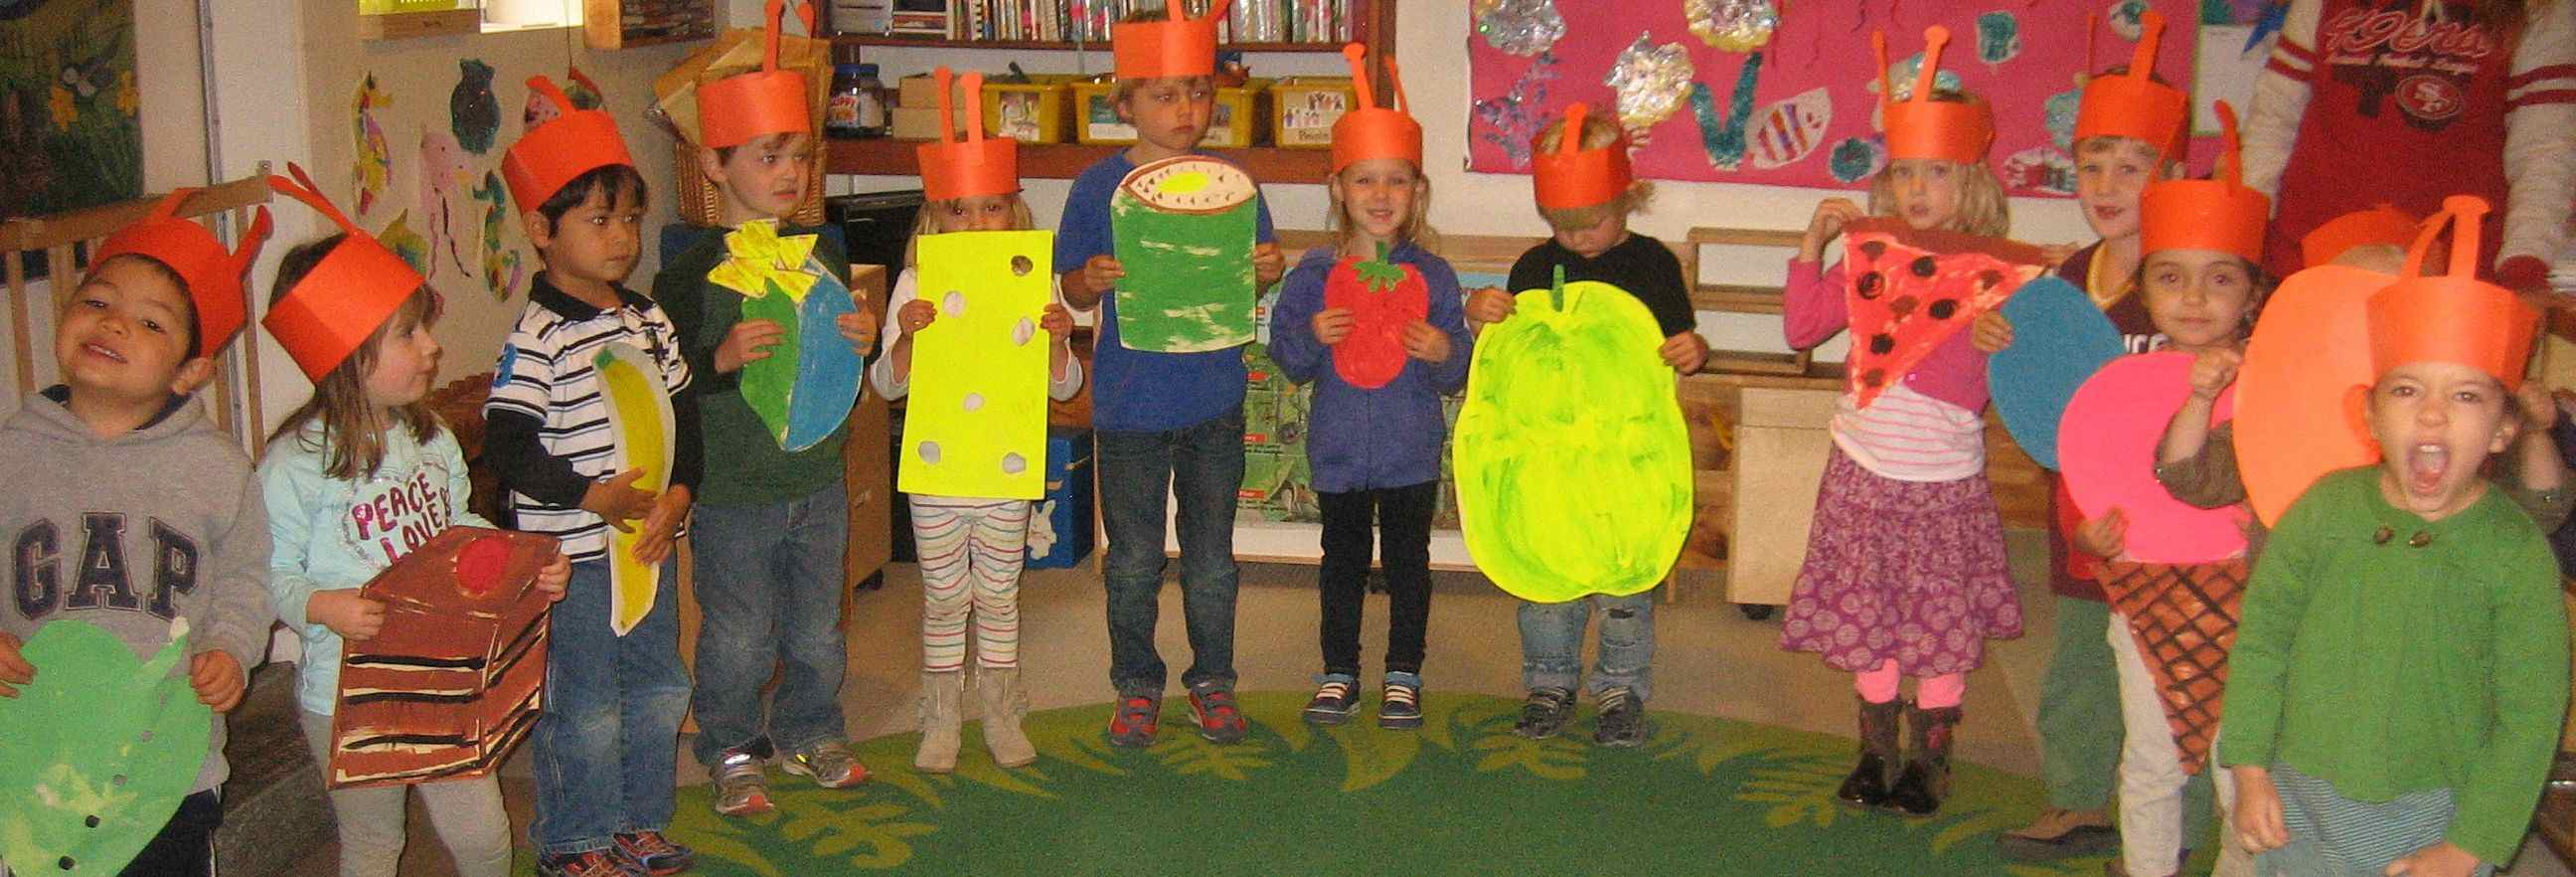 hungry caterpillar play